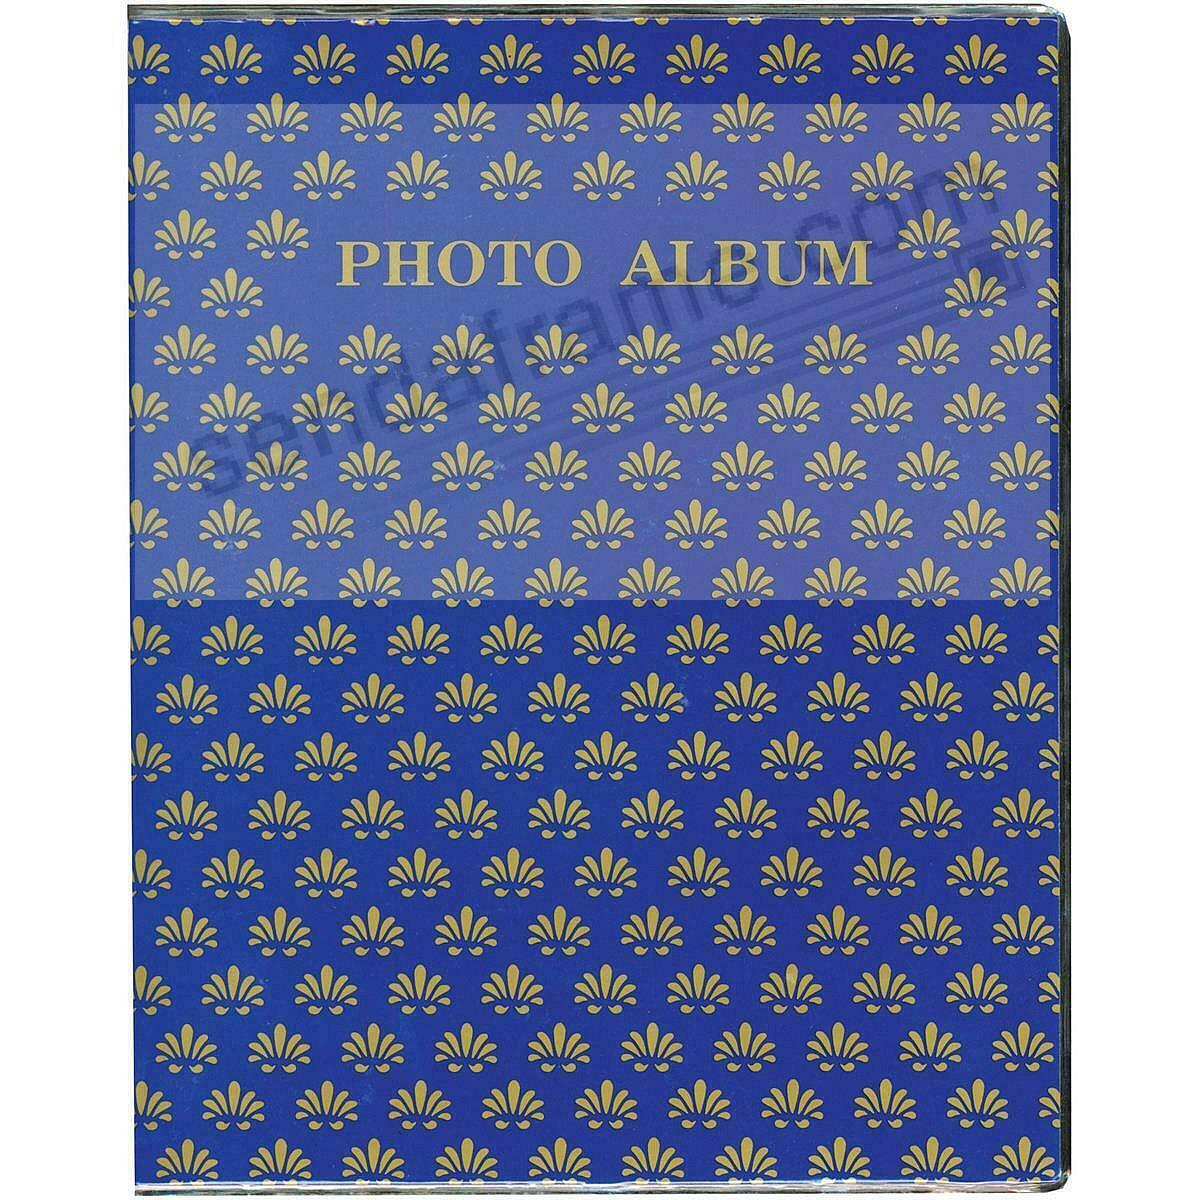 NAVY-BLUE Proof style 2-up photo book holds 64 prints (3pc bundle priced)